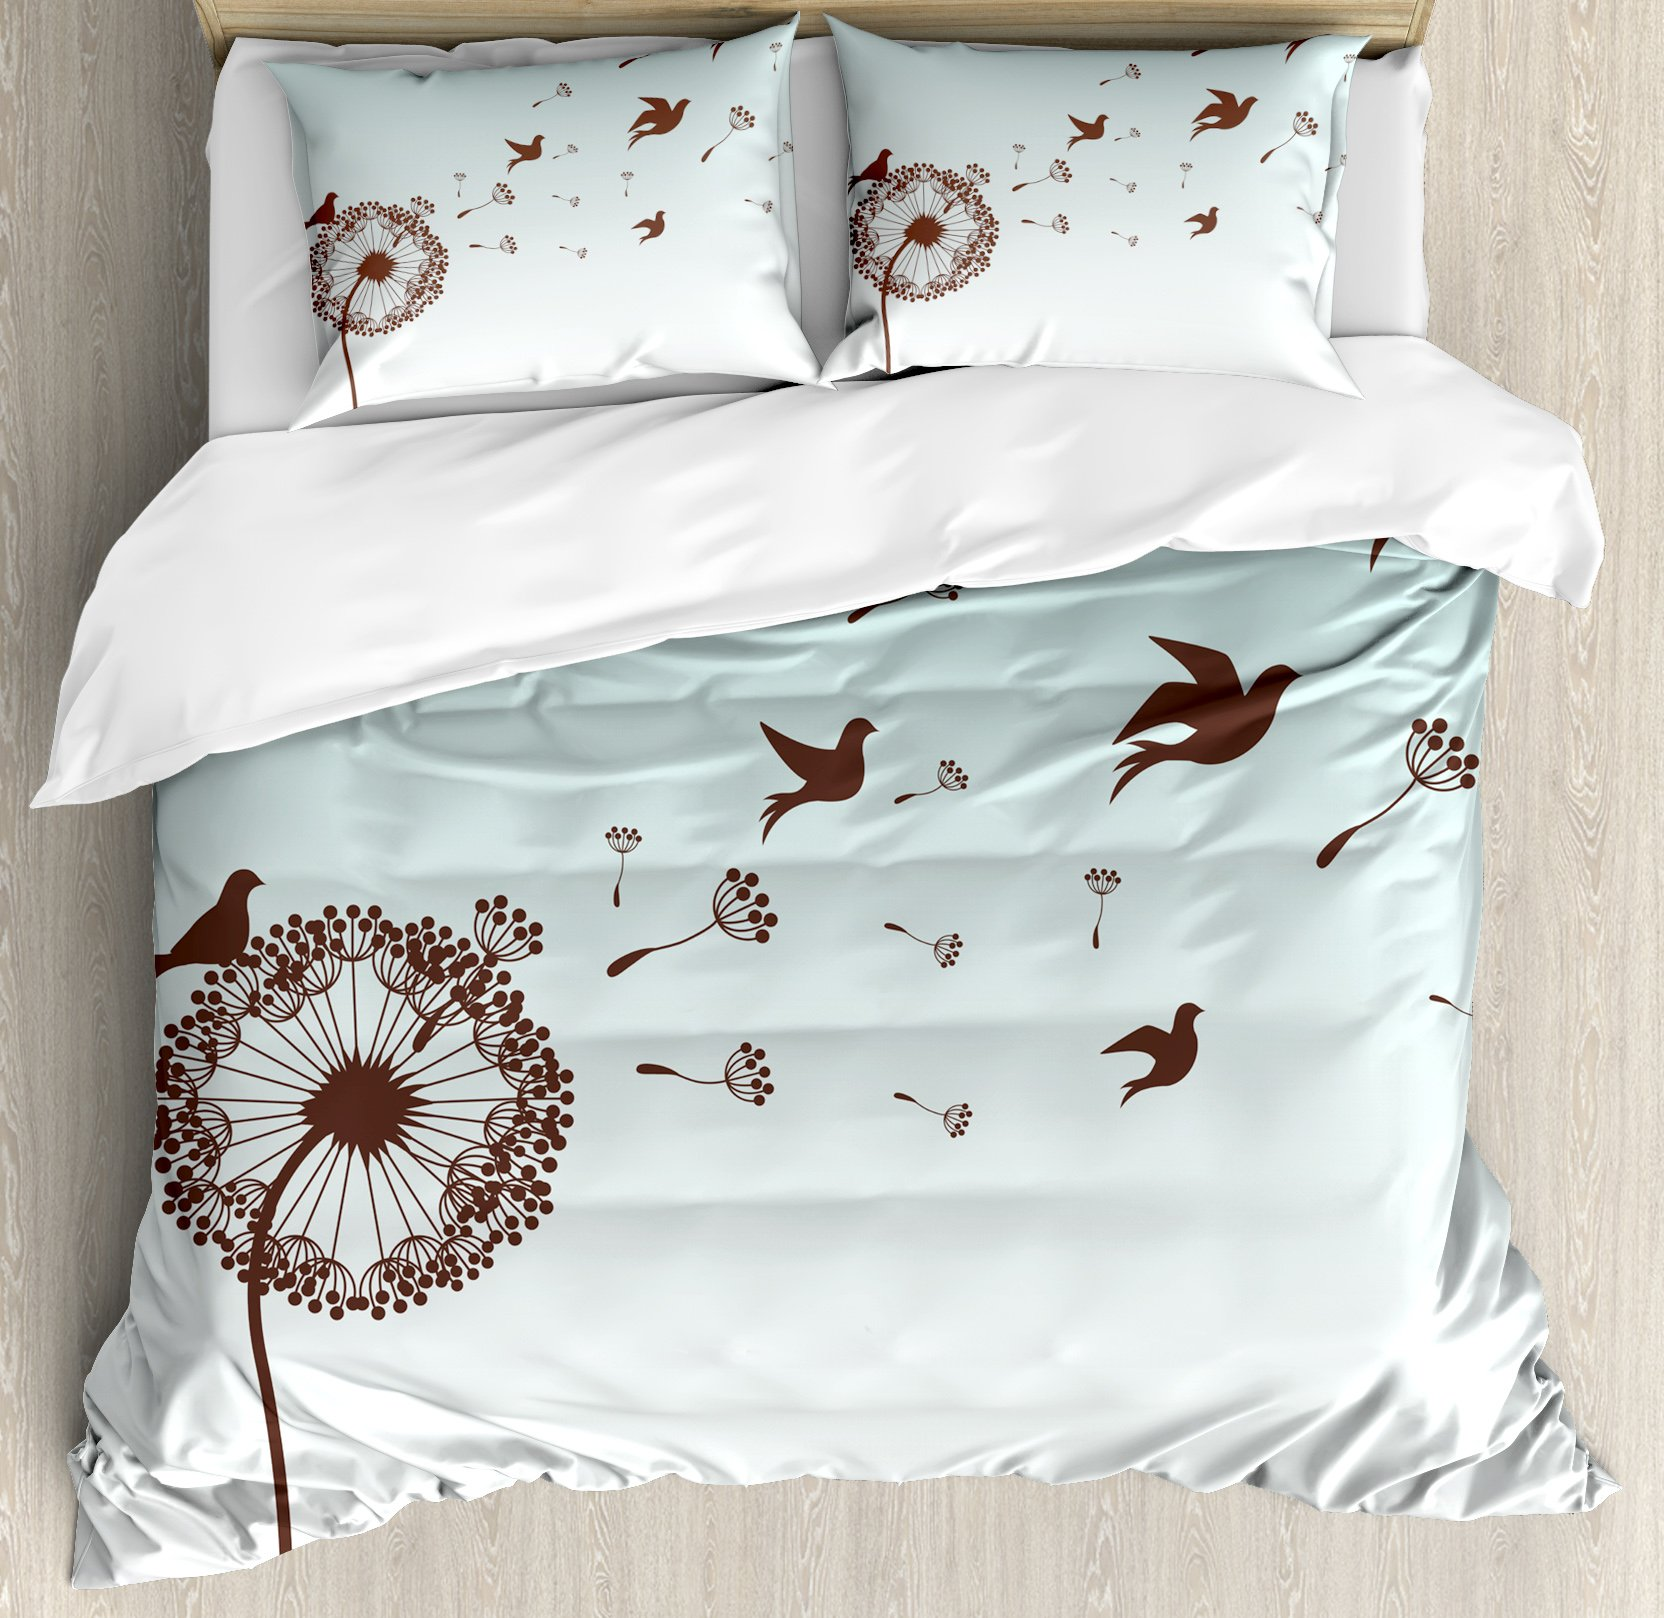 Ambesonne Art Duvet Cover Set King Size, Dandelion Flower Arrangement Petals Doves Flying Silhouettes Fantasy Blooms Print, Decorative 3 Piece Bedding Set with 2 Pillow Shams, Turquoise Brown